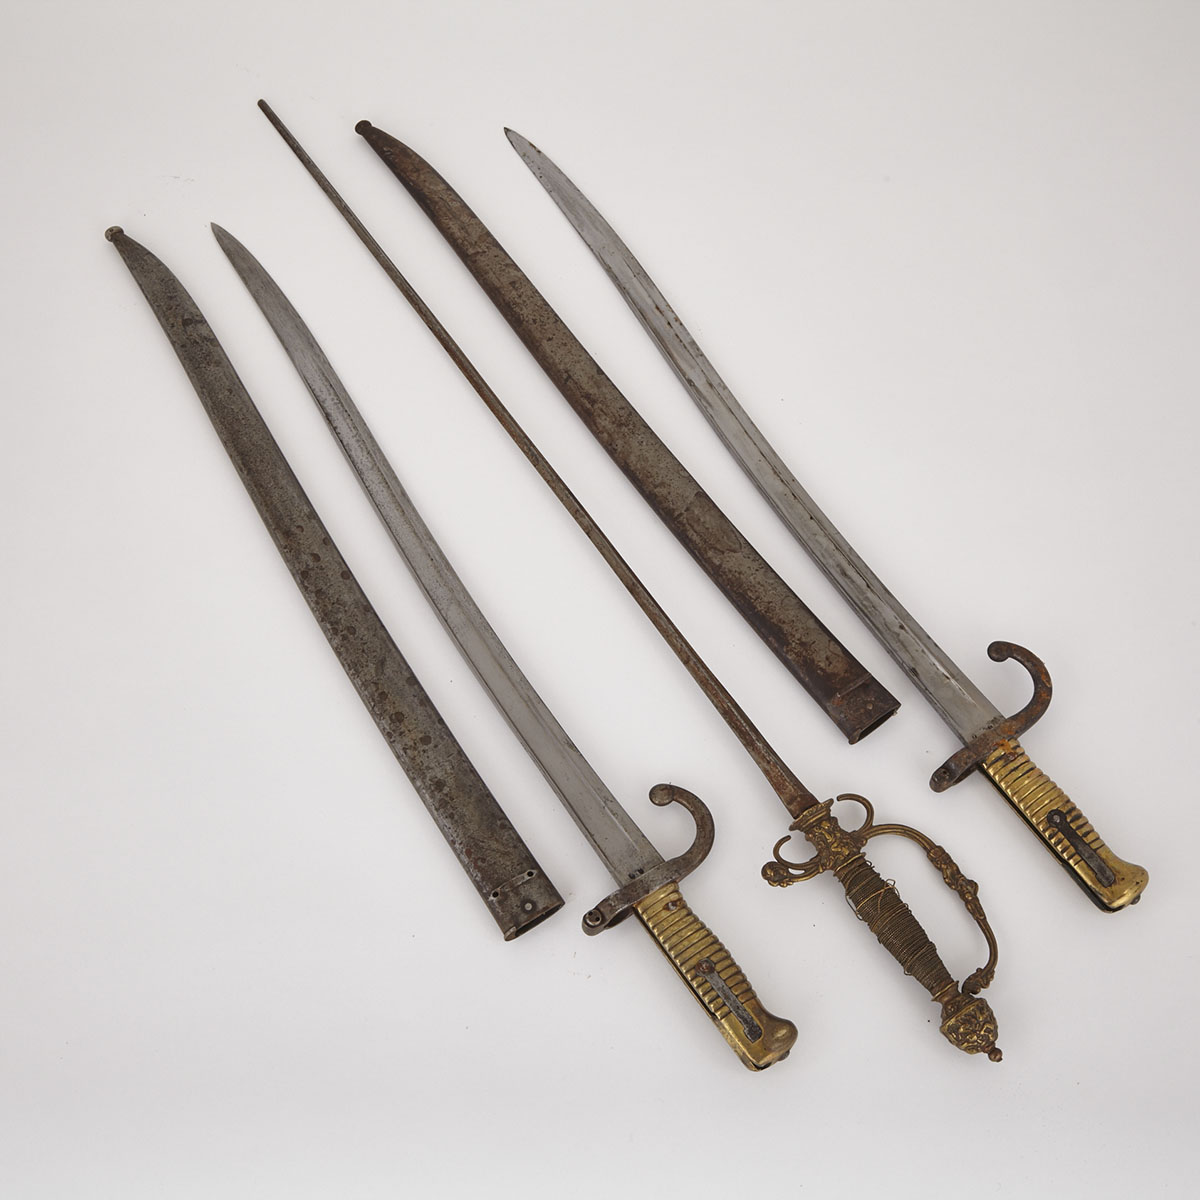 Three French Edged Weapons, 19th century